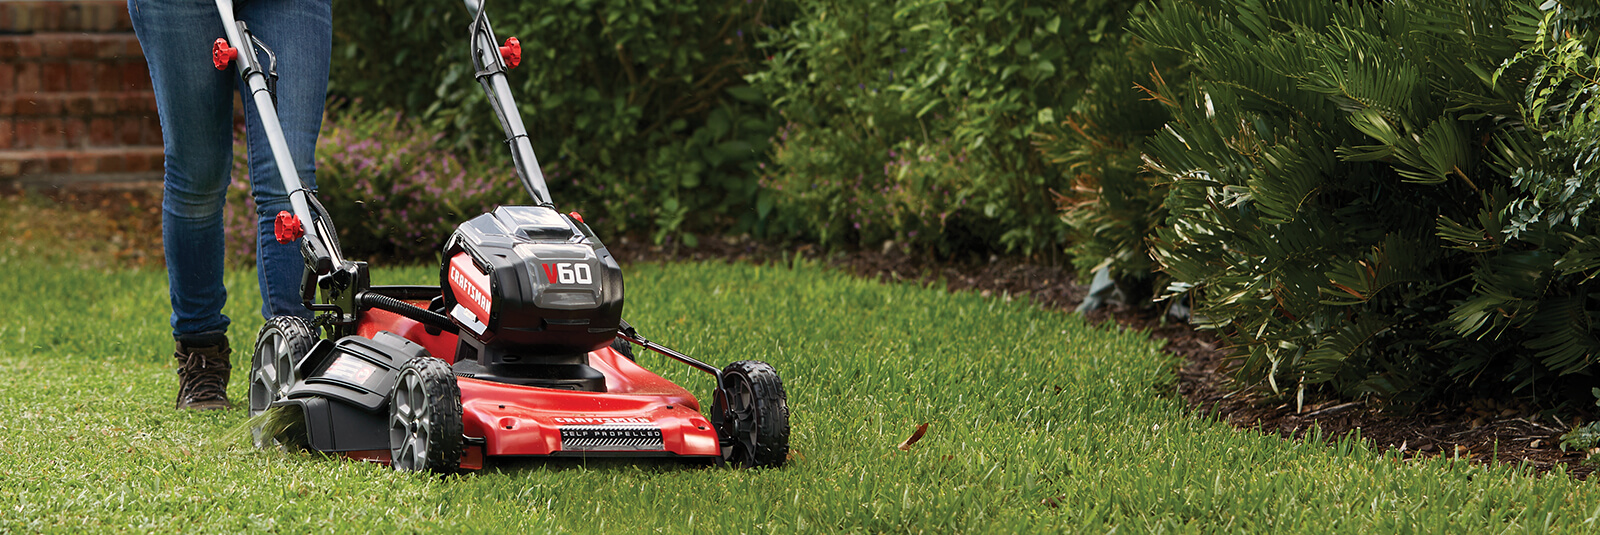 Shop All Craftsman Lawn Mowers Craftsman